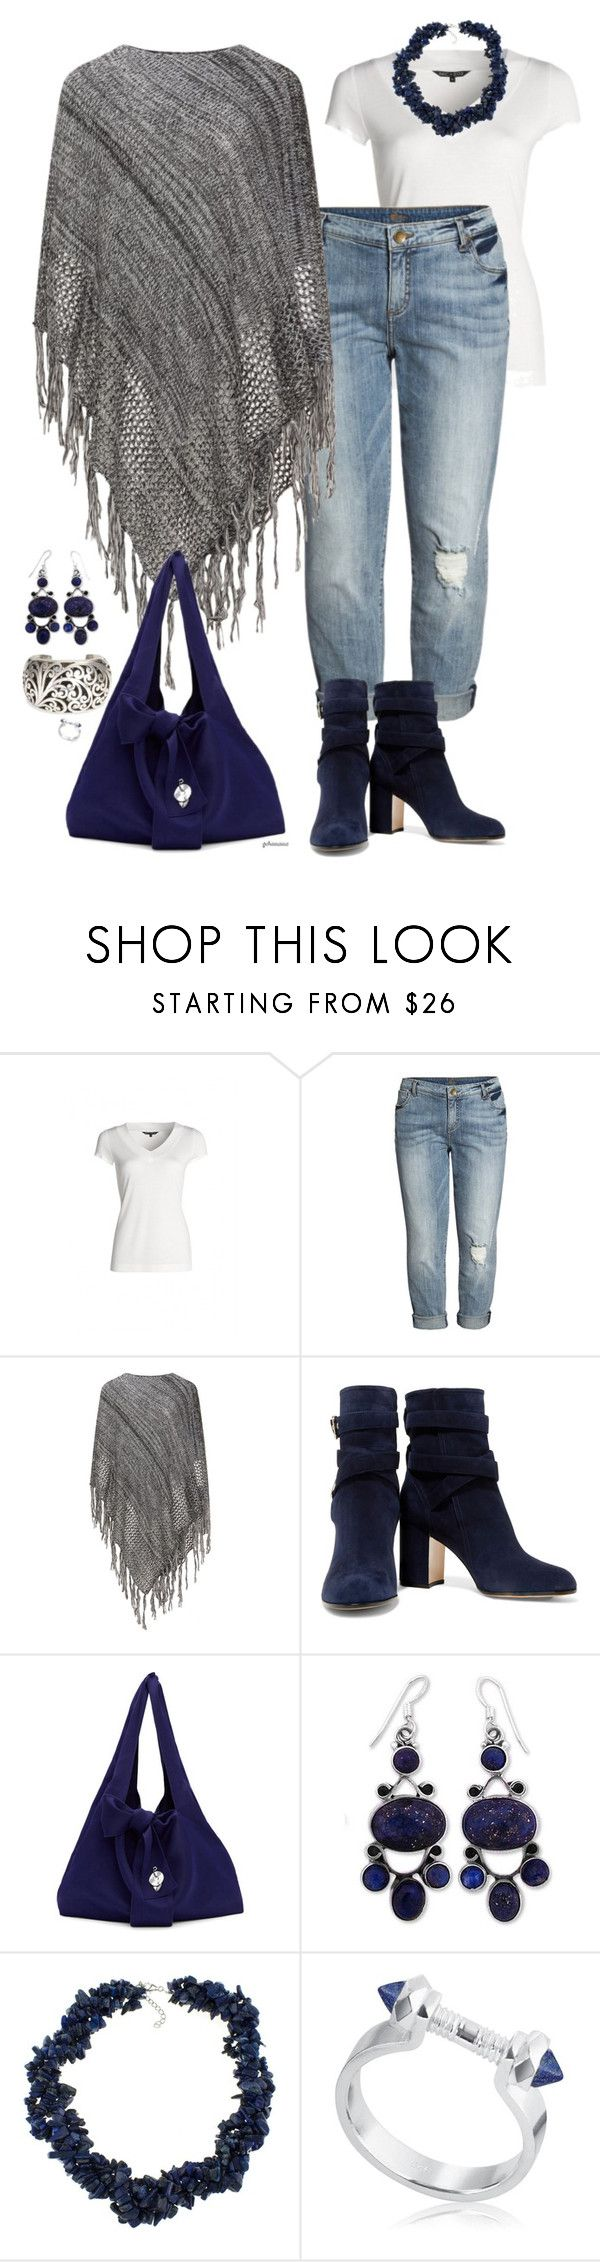 """Lapis blue- plus size"" by gchamama ❤ liked on Polyvore featuring NIC+ZOE, KUT from the Kloth, Gianvito Rossi, 3.1 Phillip Lim, NOVICA, Lois Hill, Pearlz Ocean and Edge of Ember"